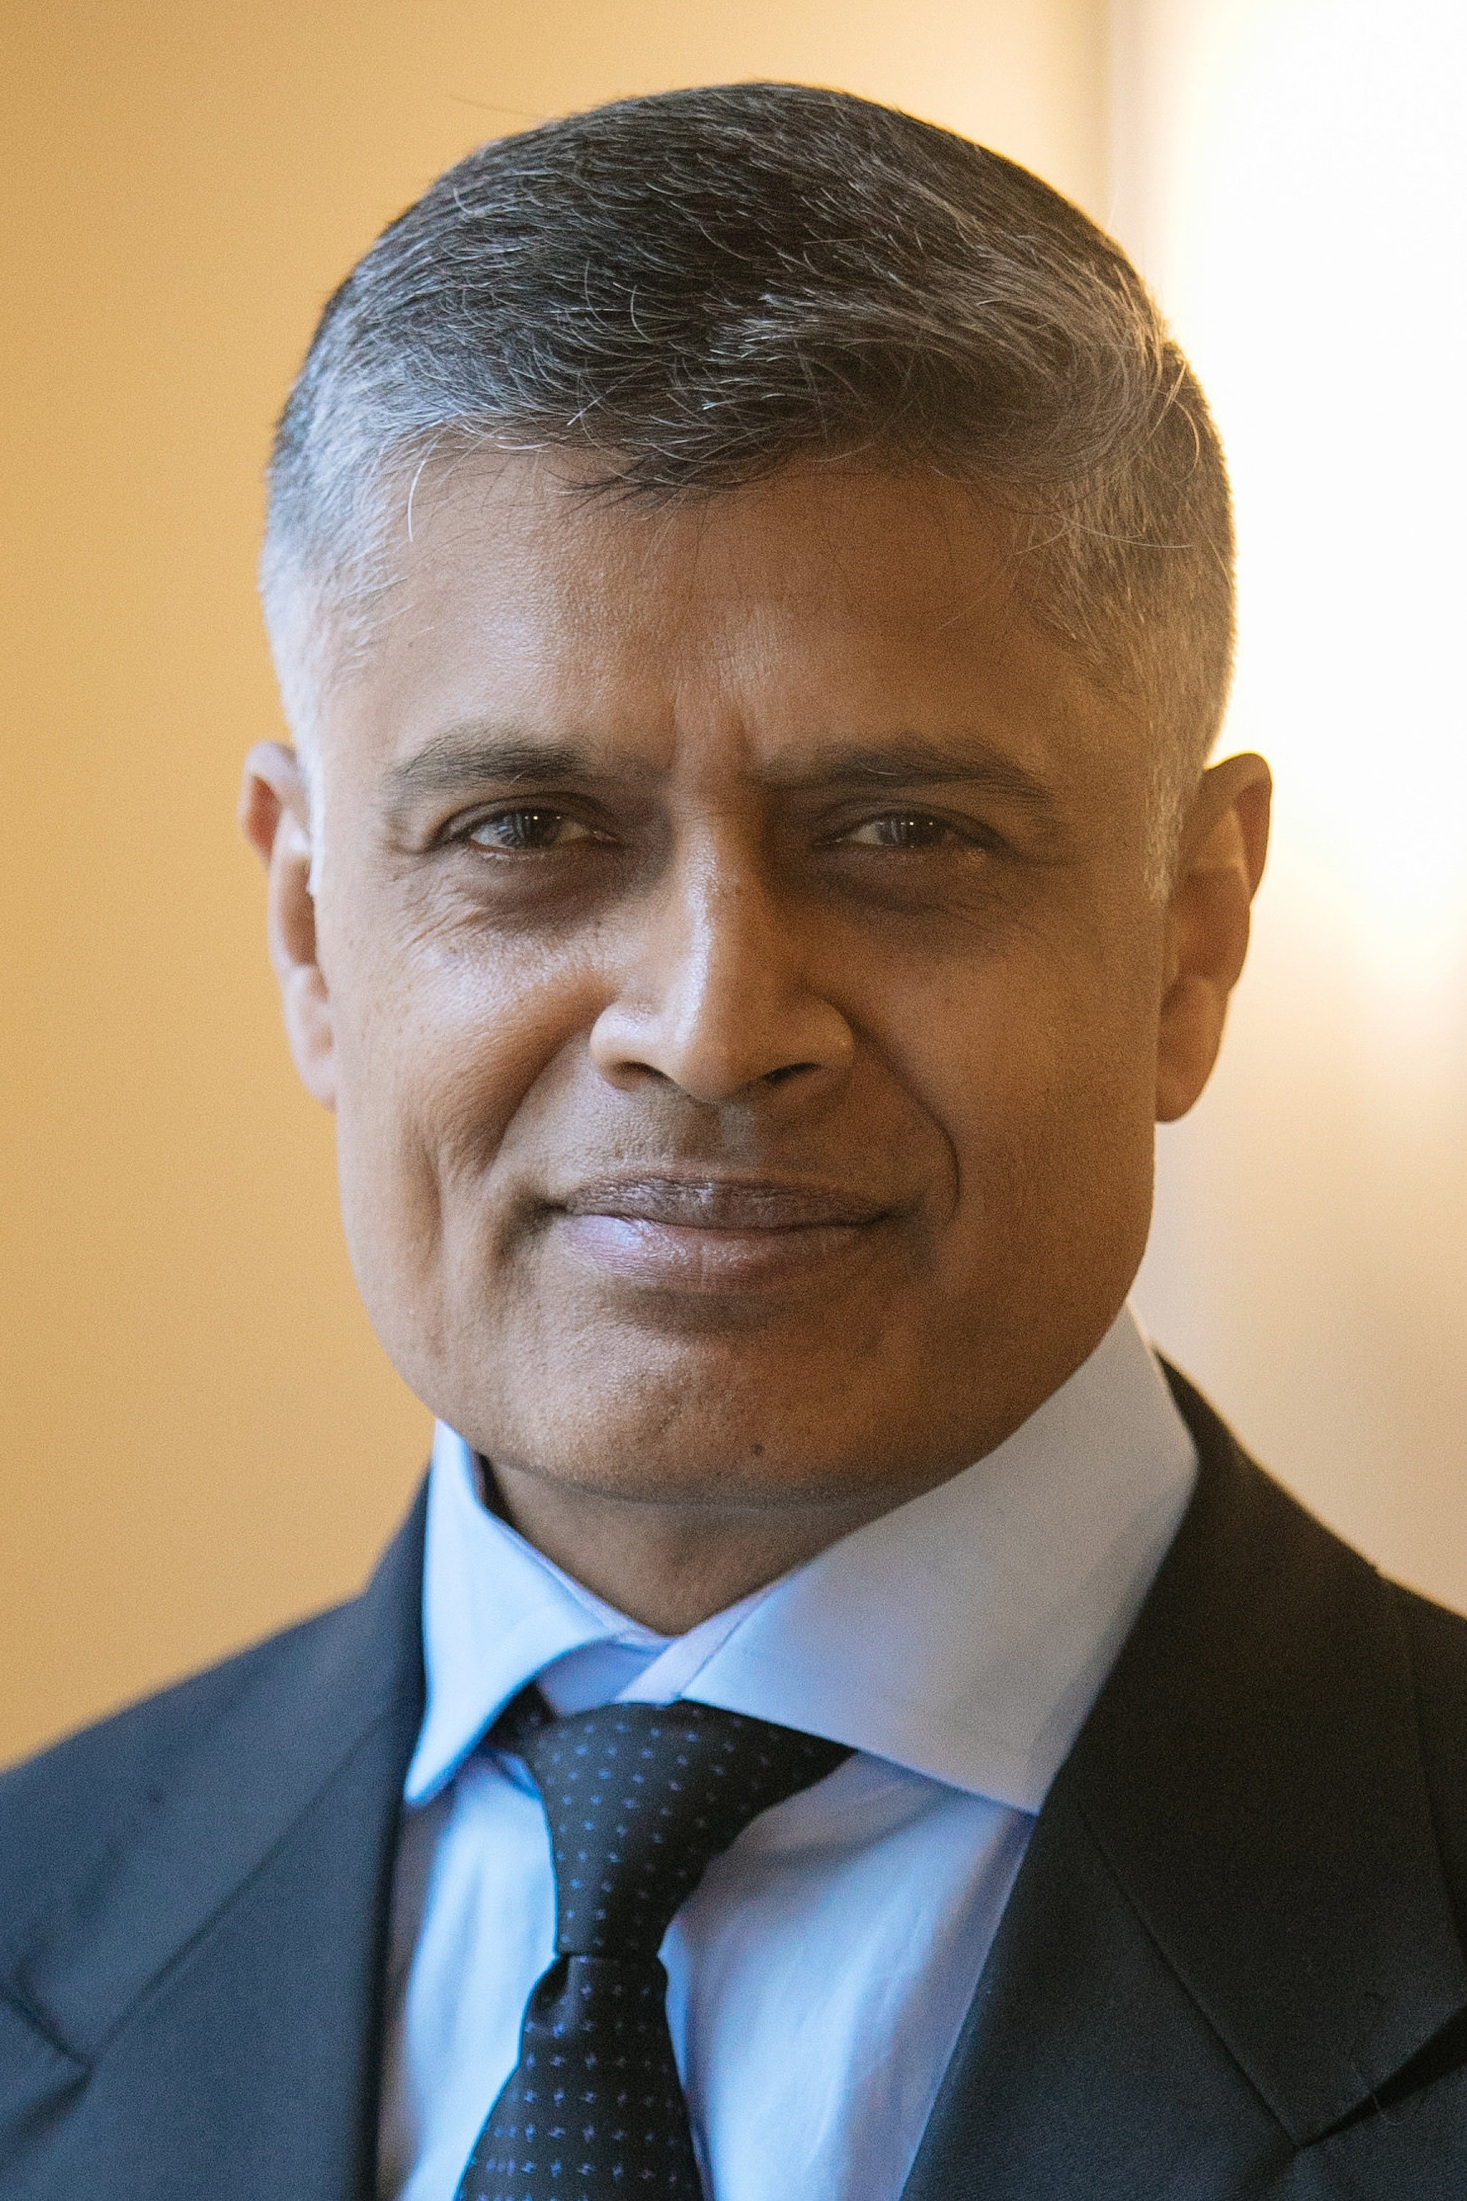 KETAN PATEL   Greater Pacific Capital  Chief Executive Officer & Founder